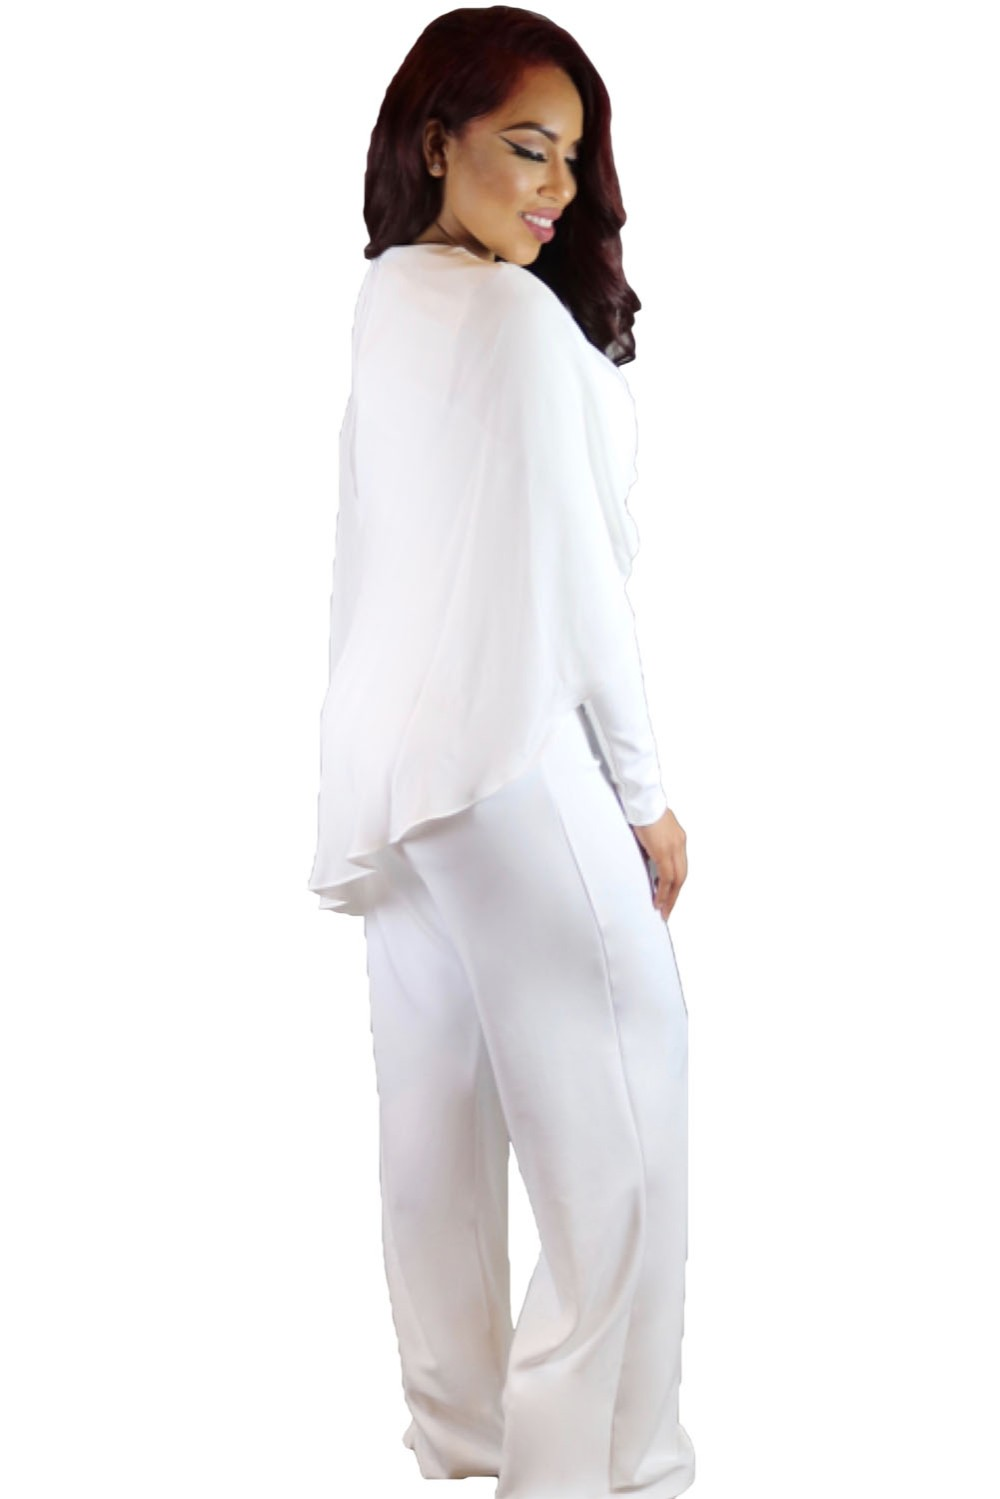 Cape-Long-Sleeves-Wide-Leg-Jumpsuit-LC64203-1-2